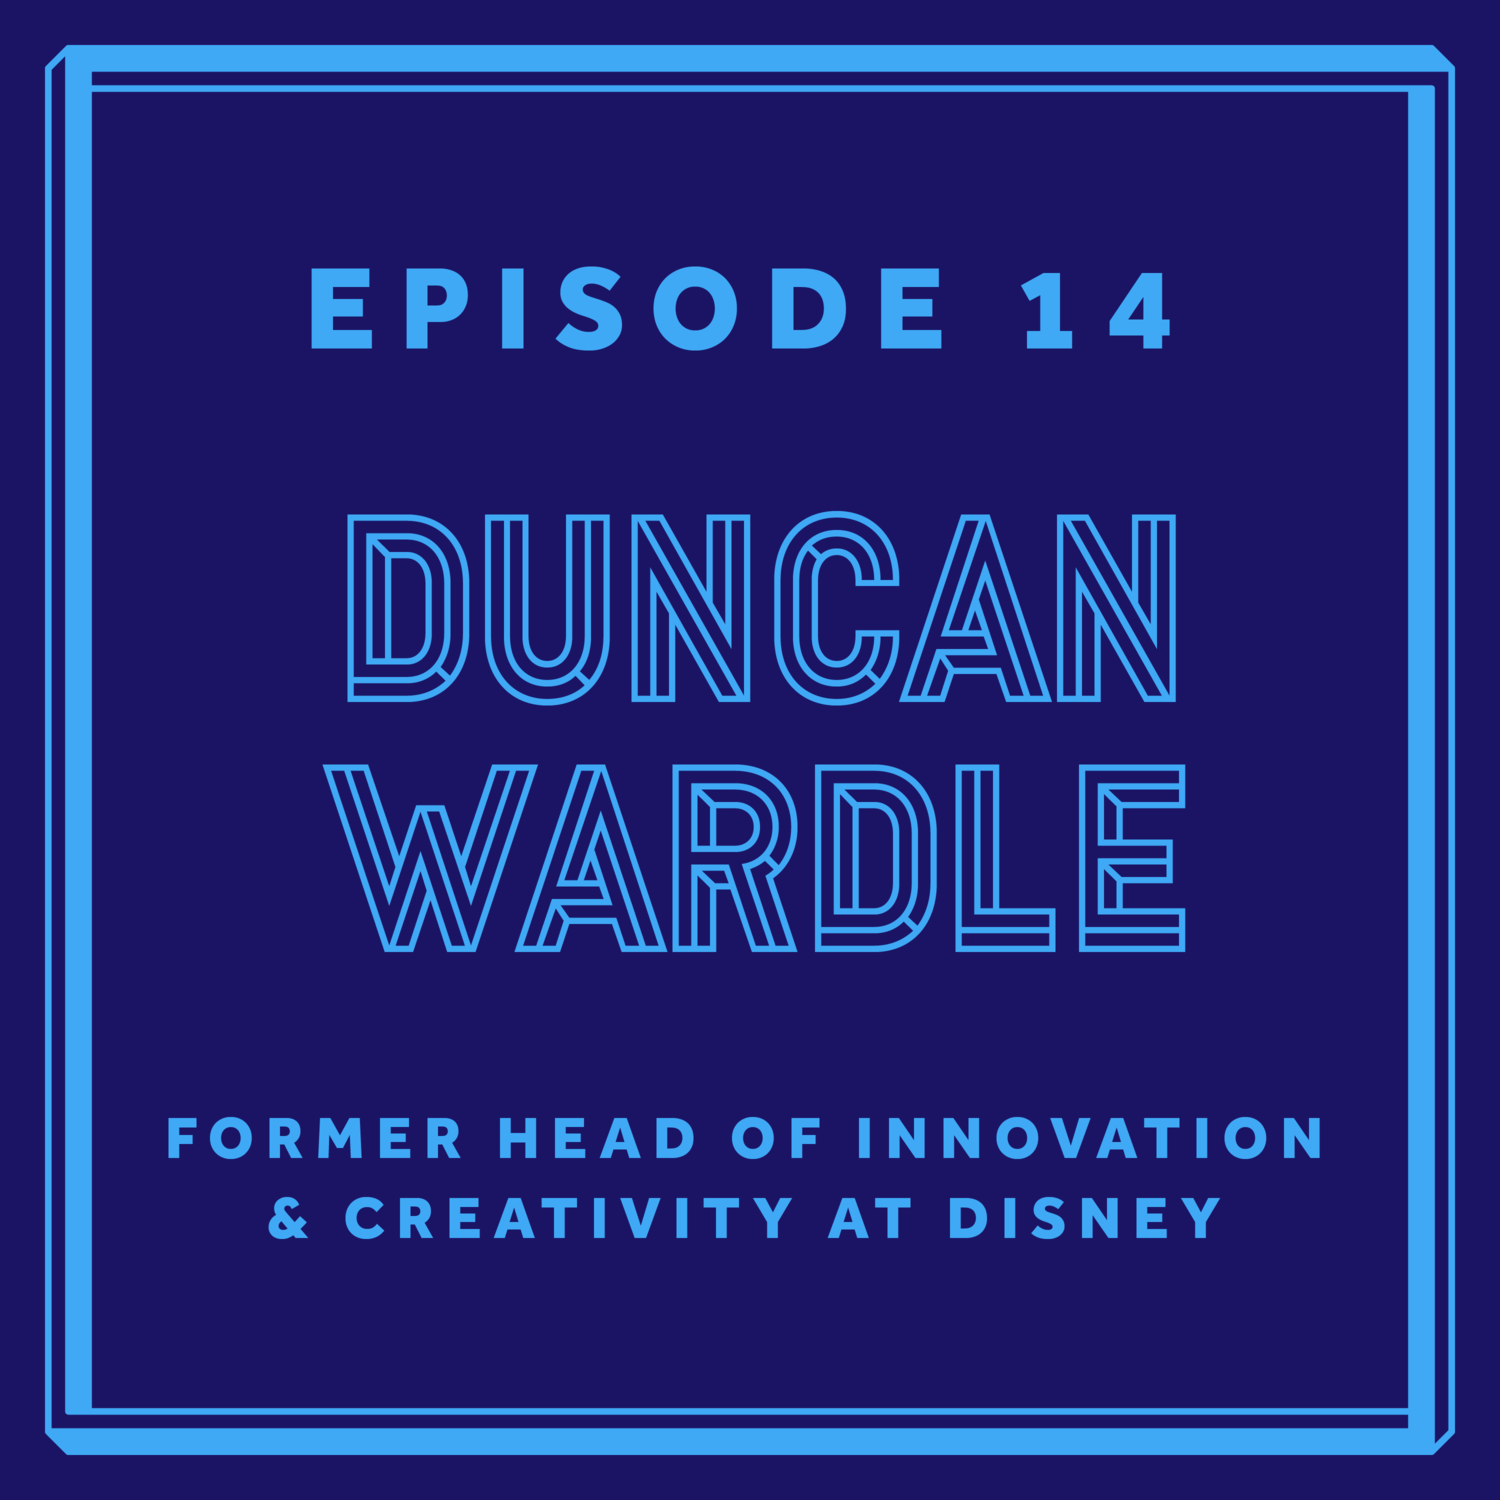 Episode 14: Duncan Wardle - Former Head of Innovation & Creativity at Disney